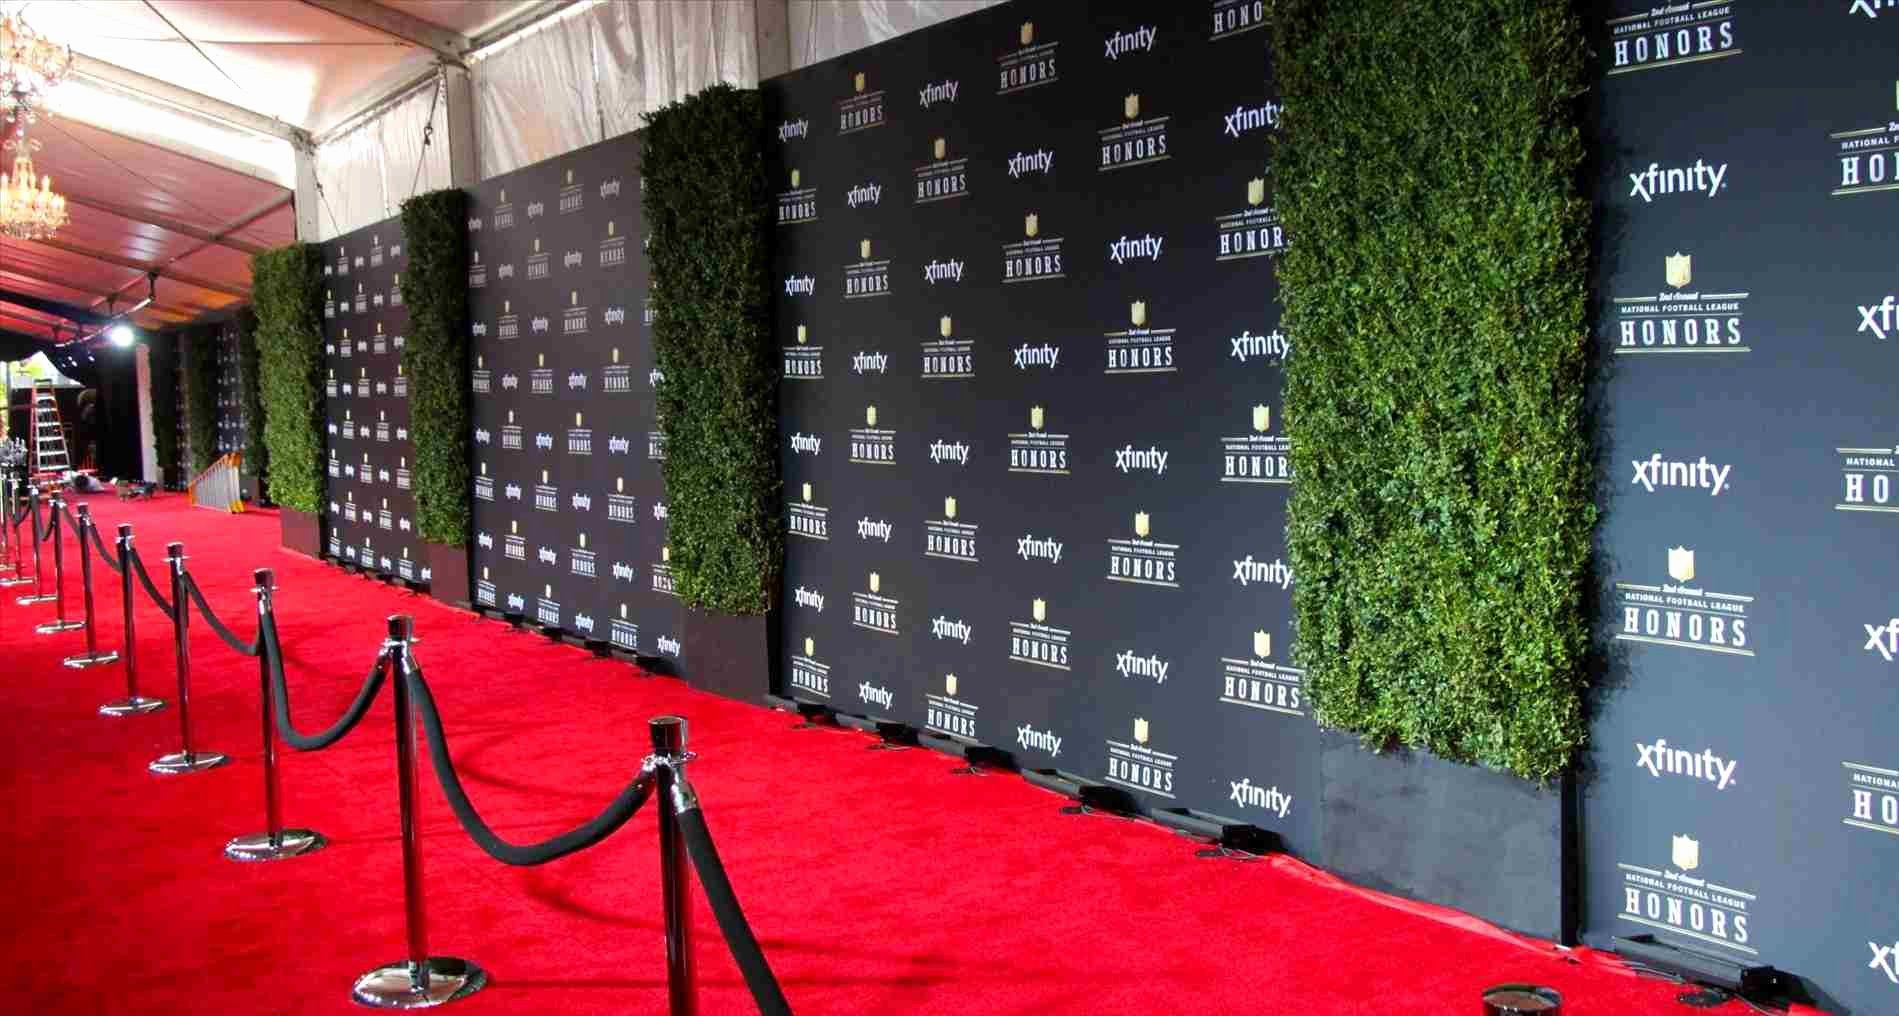 Red Carpet Backdrop Template Luxury Background Red Carpet Backdrop Template Youtube event